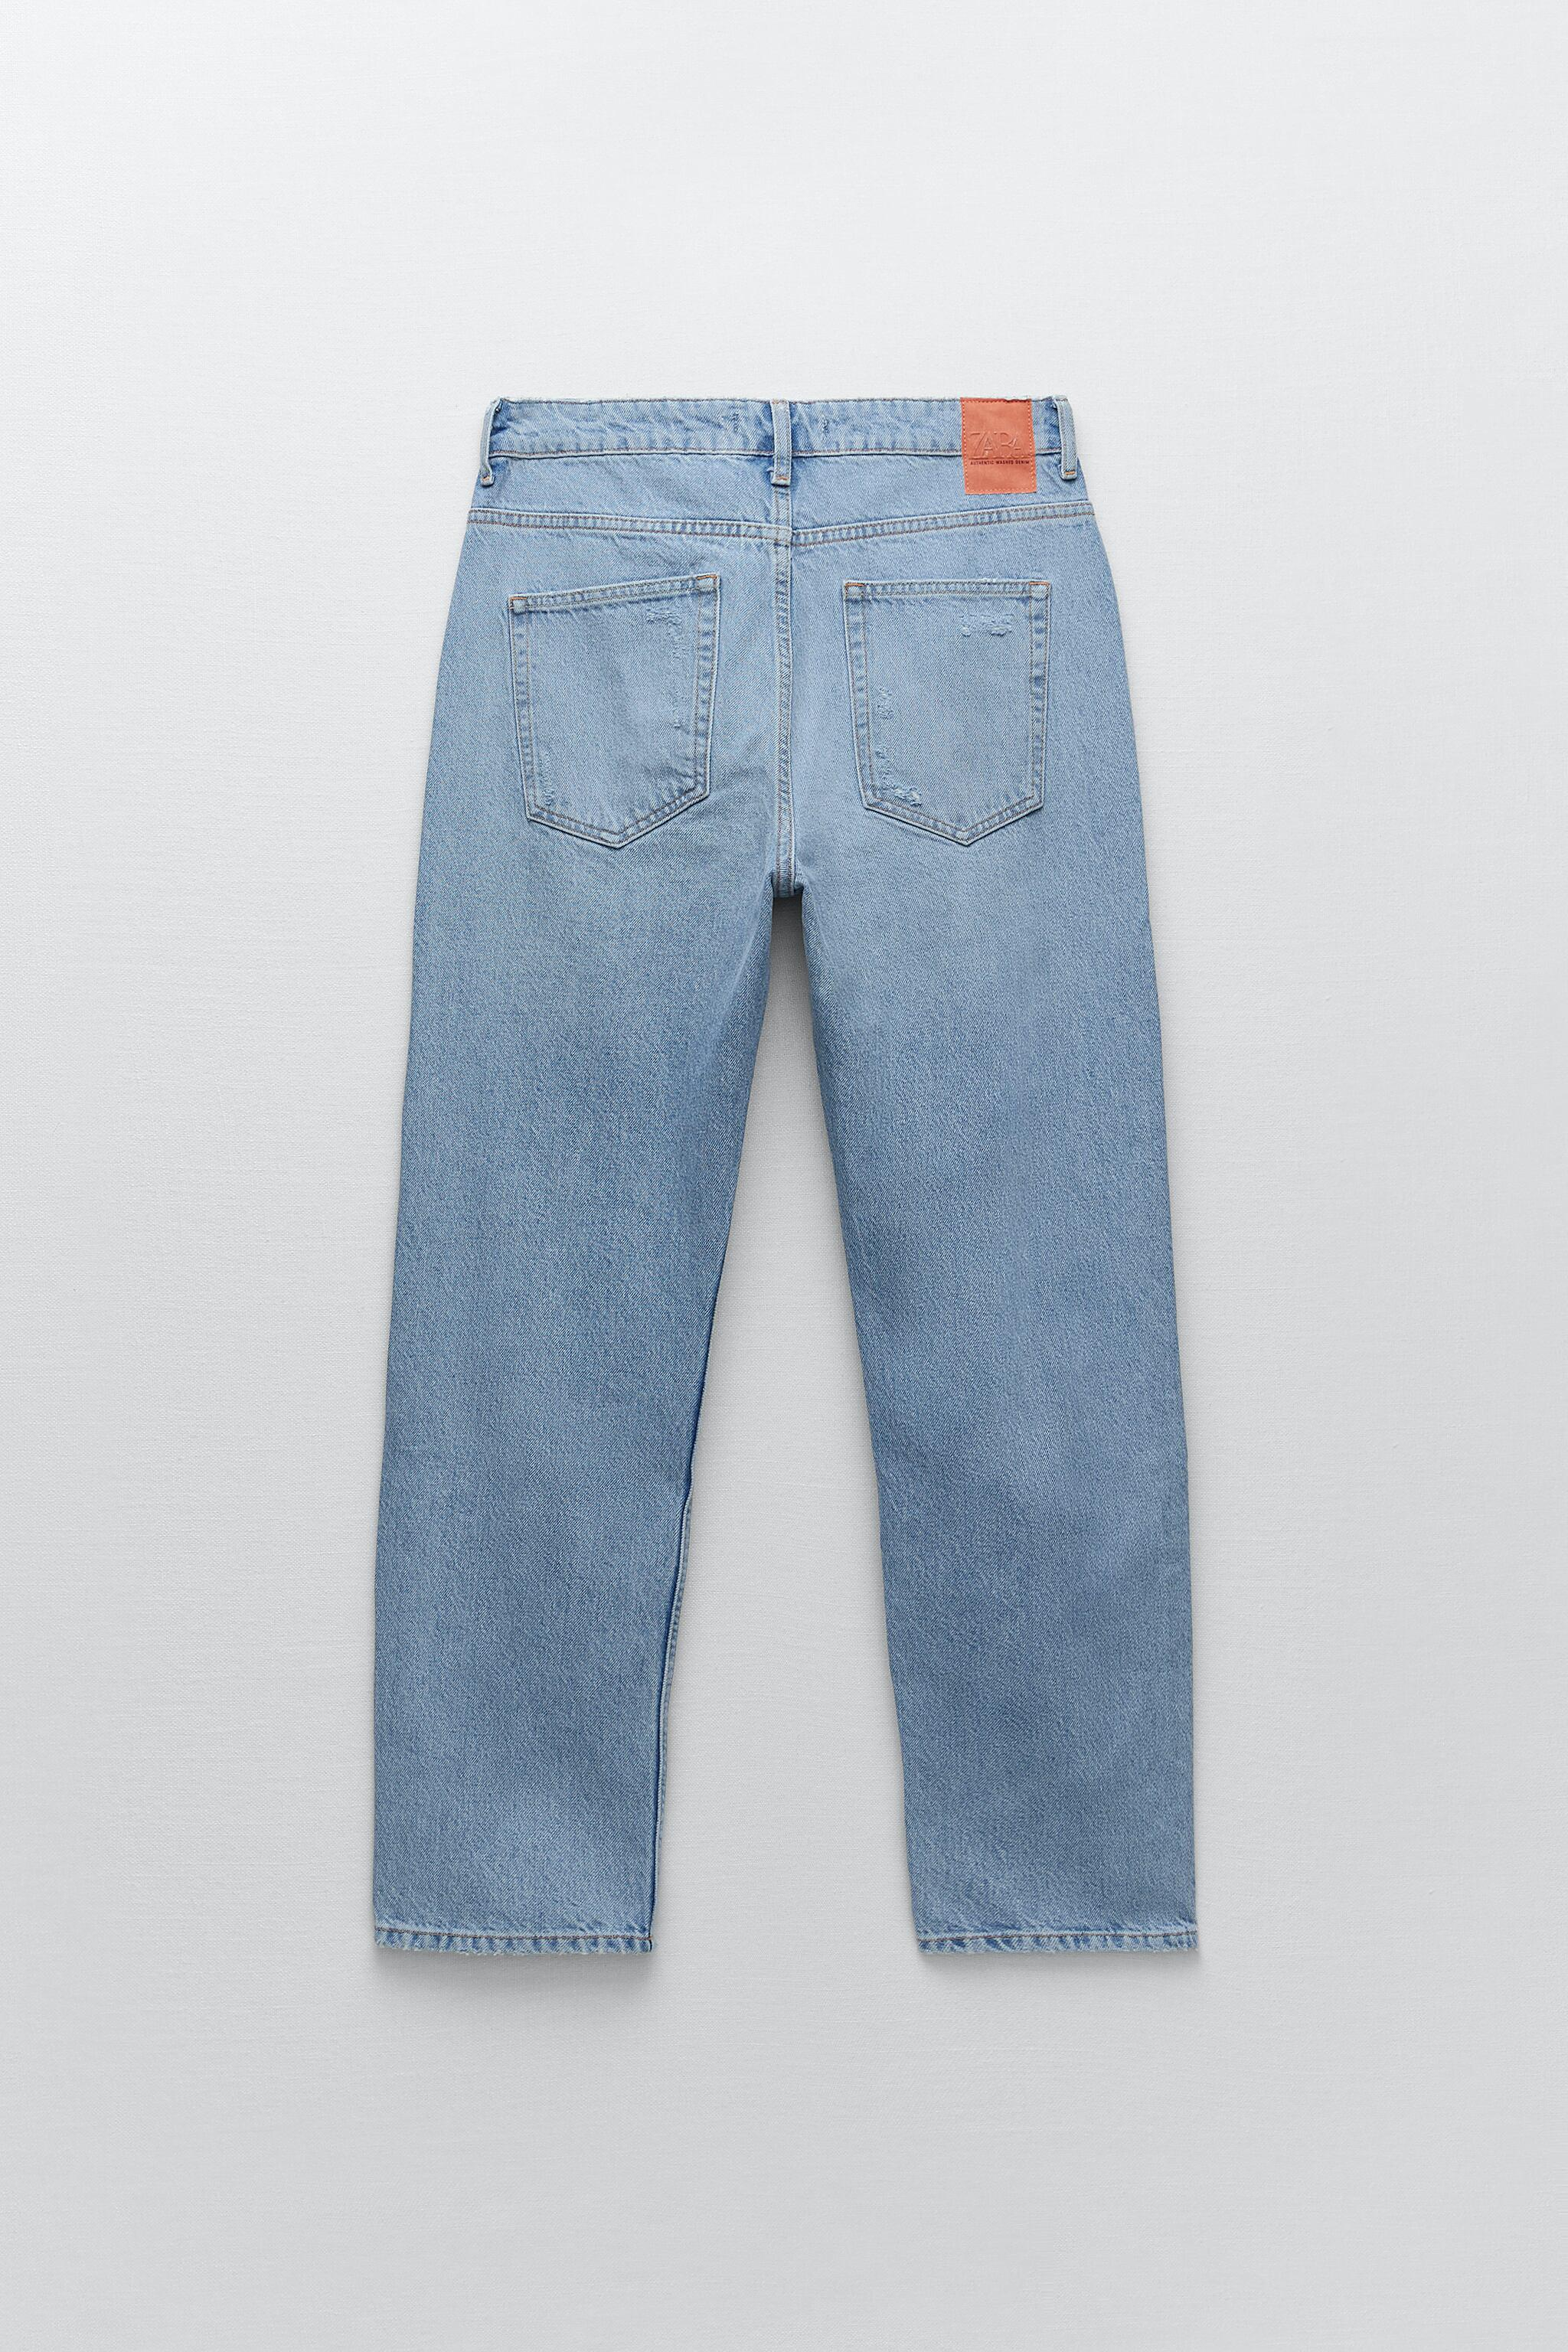 Z1975 RELAXED FIT RIPPED JEANS 8